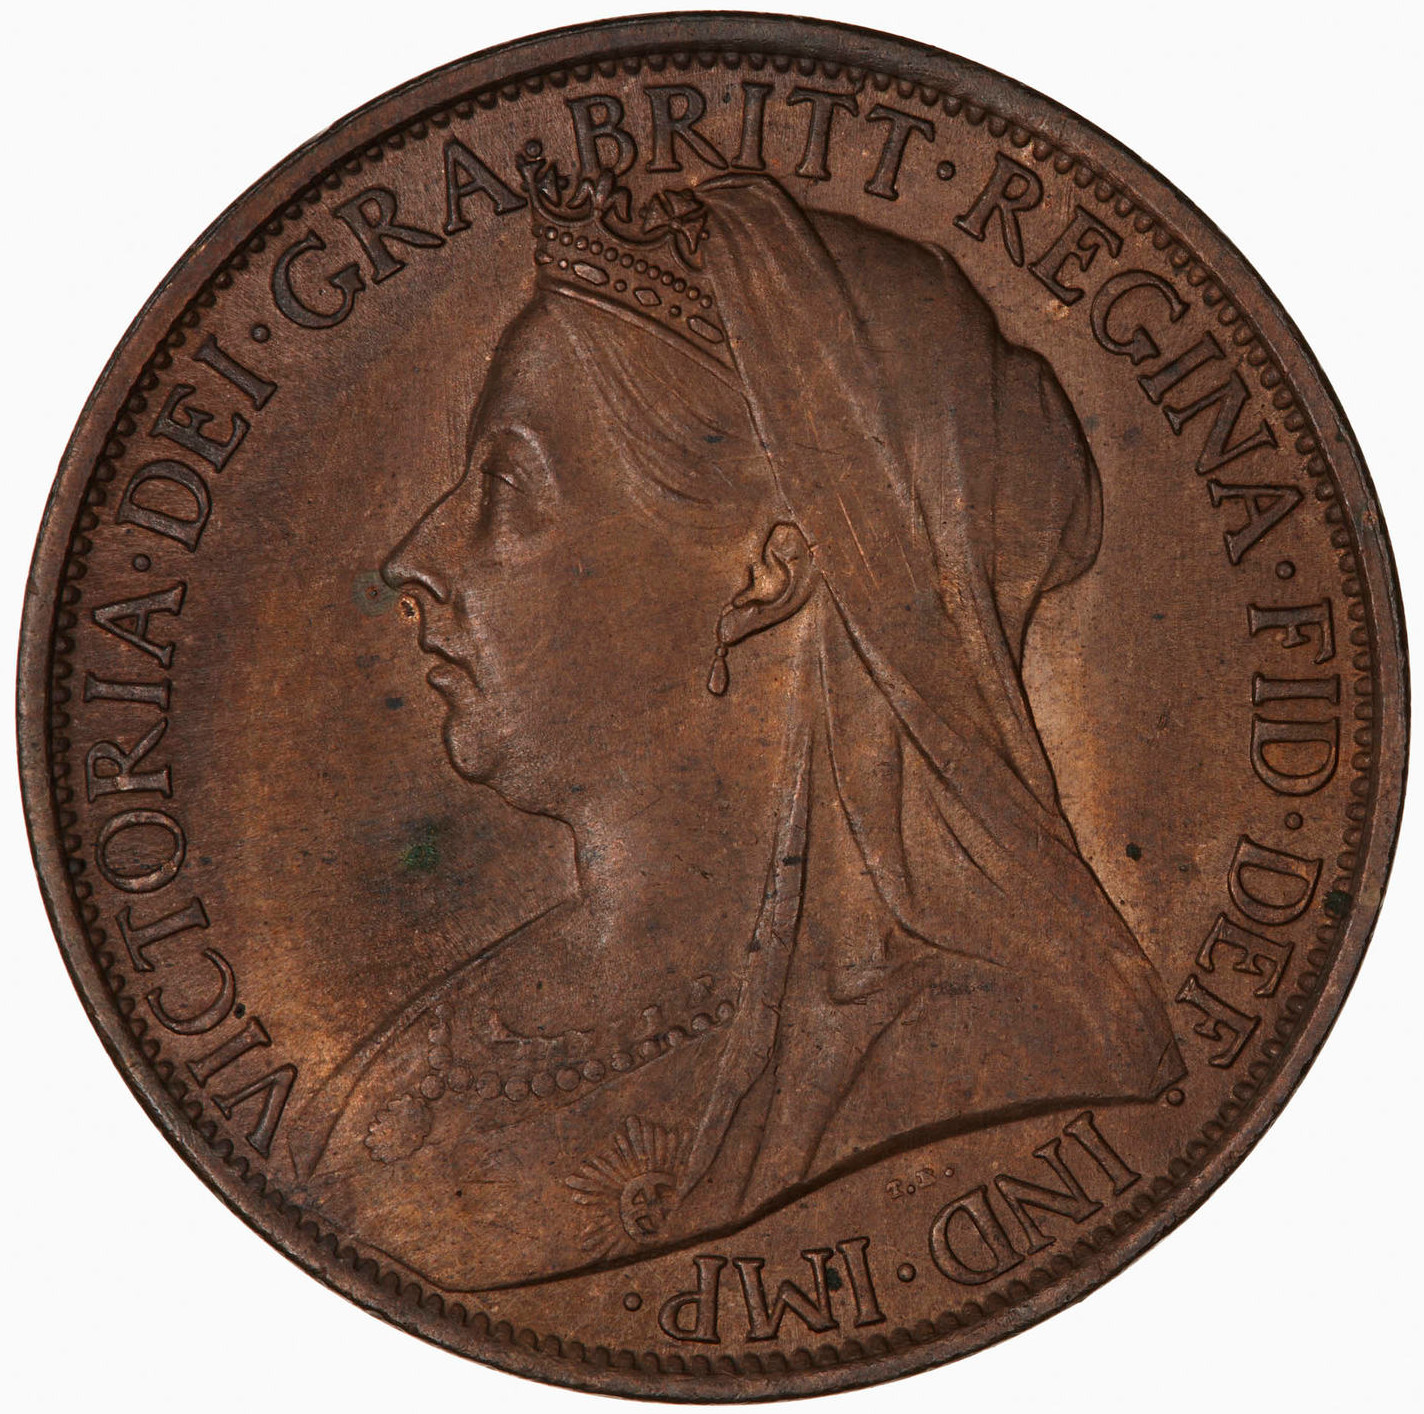 Penny 1900: Photo Coin - Penny, Queen Victoria, Great Britain, 1900